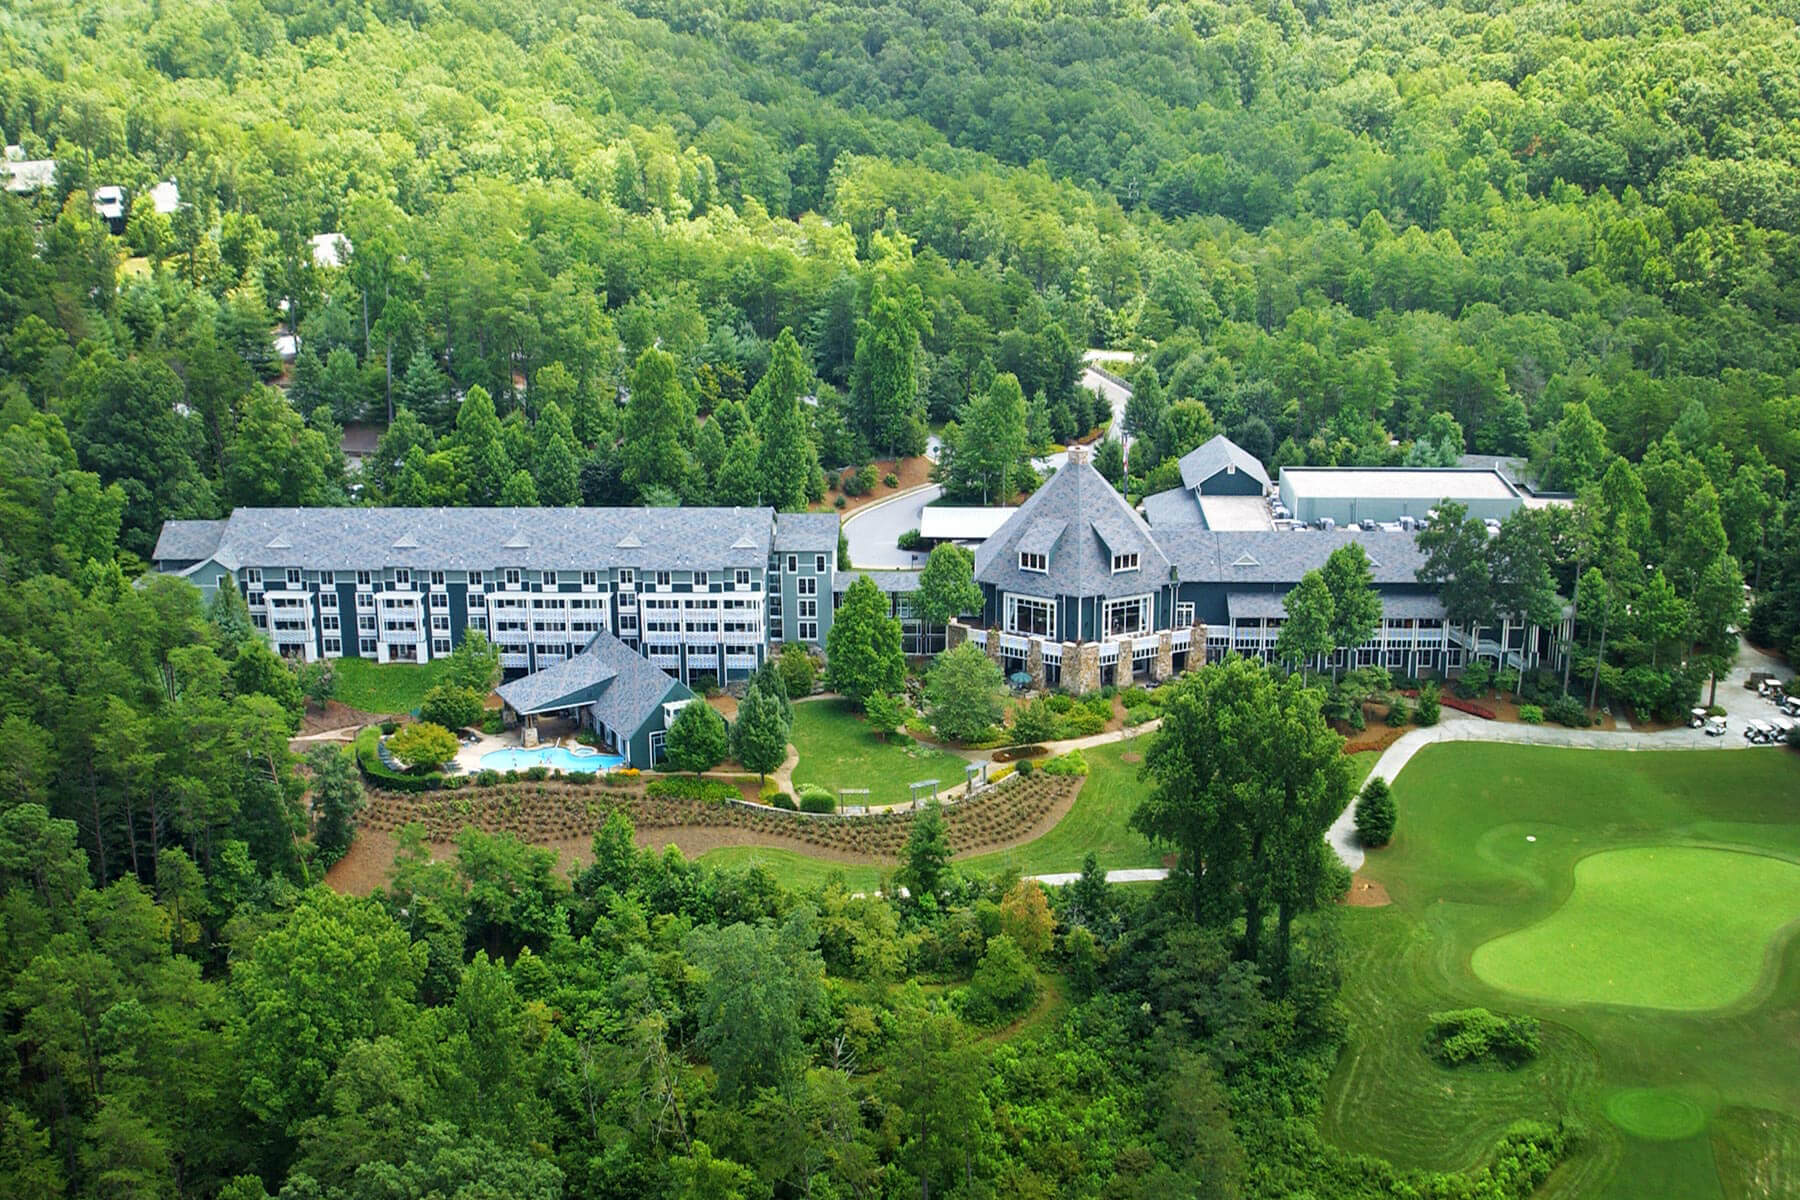 Brasstown Valley Other Coral Hospitality Properties Brasstown Valley Resort Spa